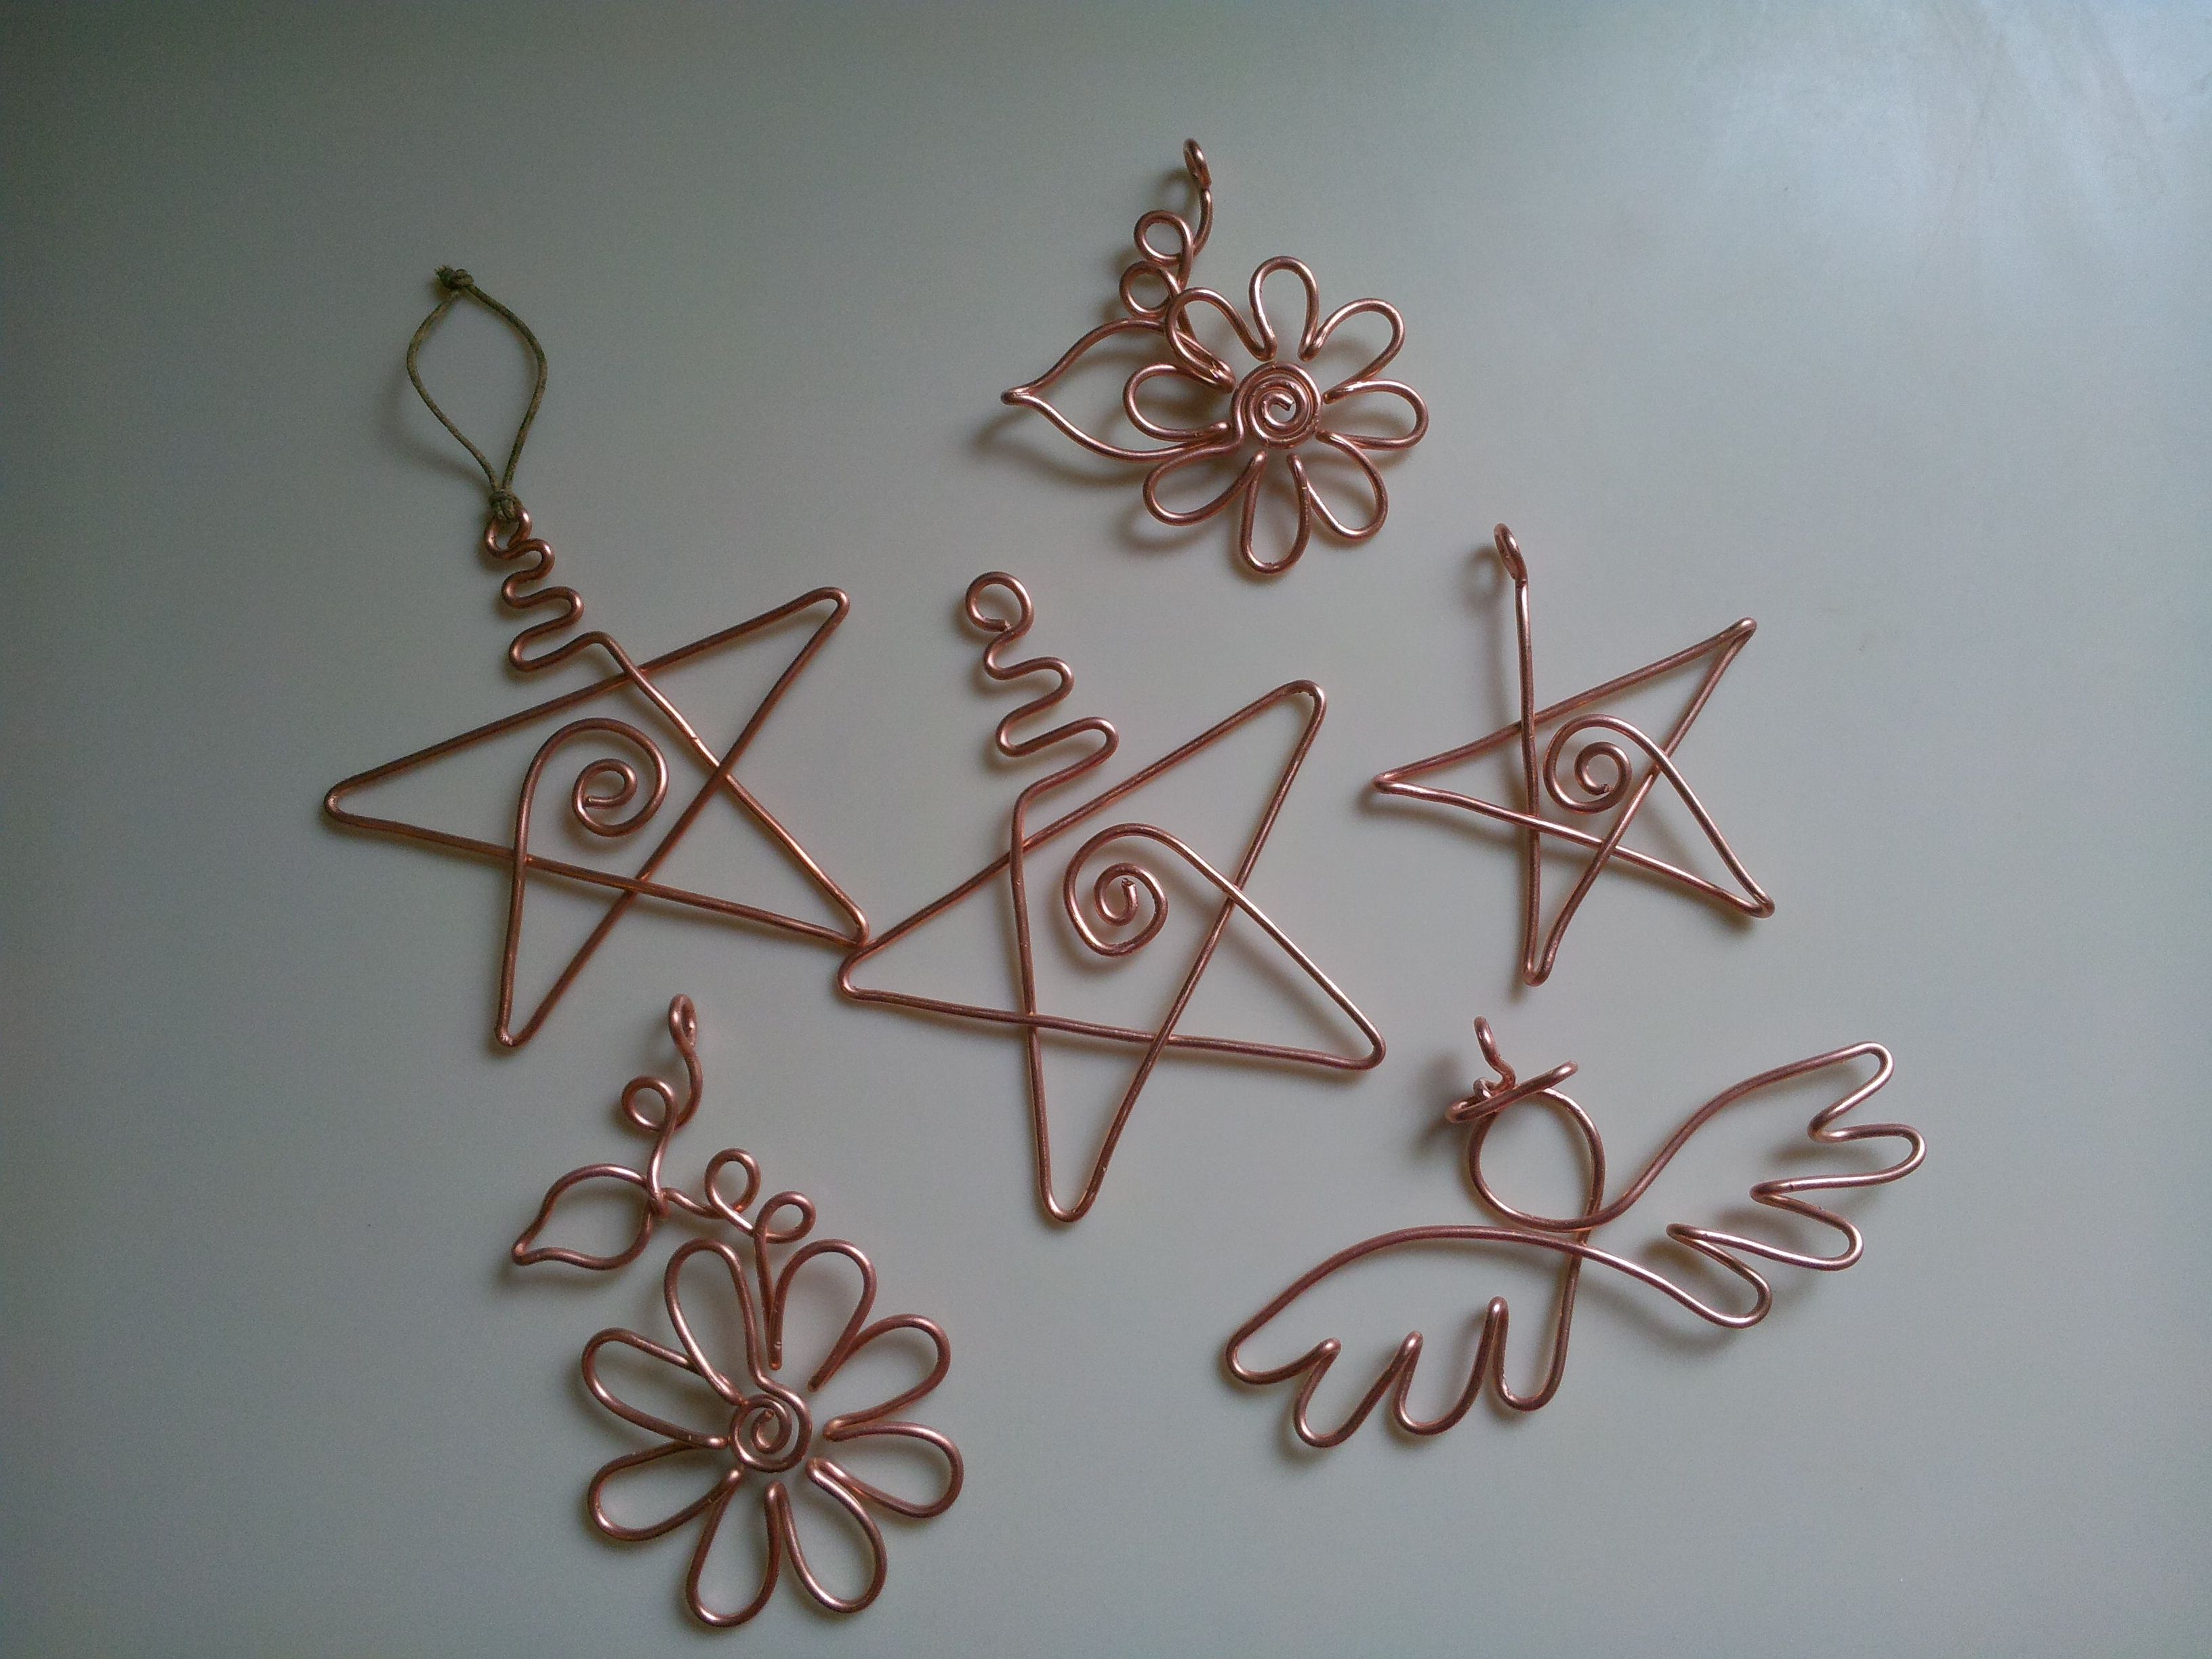 12g copper wire Christmas ornaments are about 3\